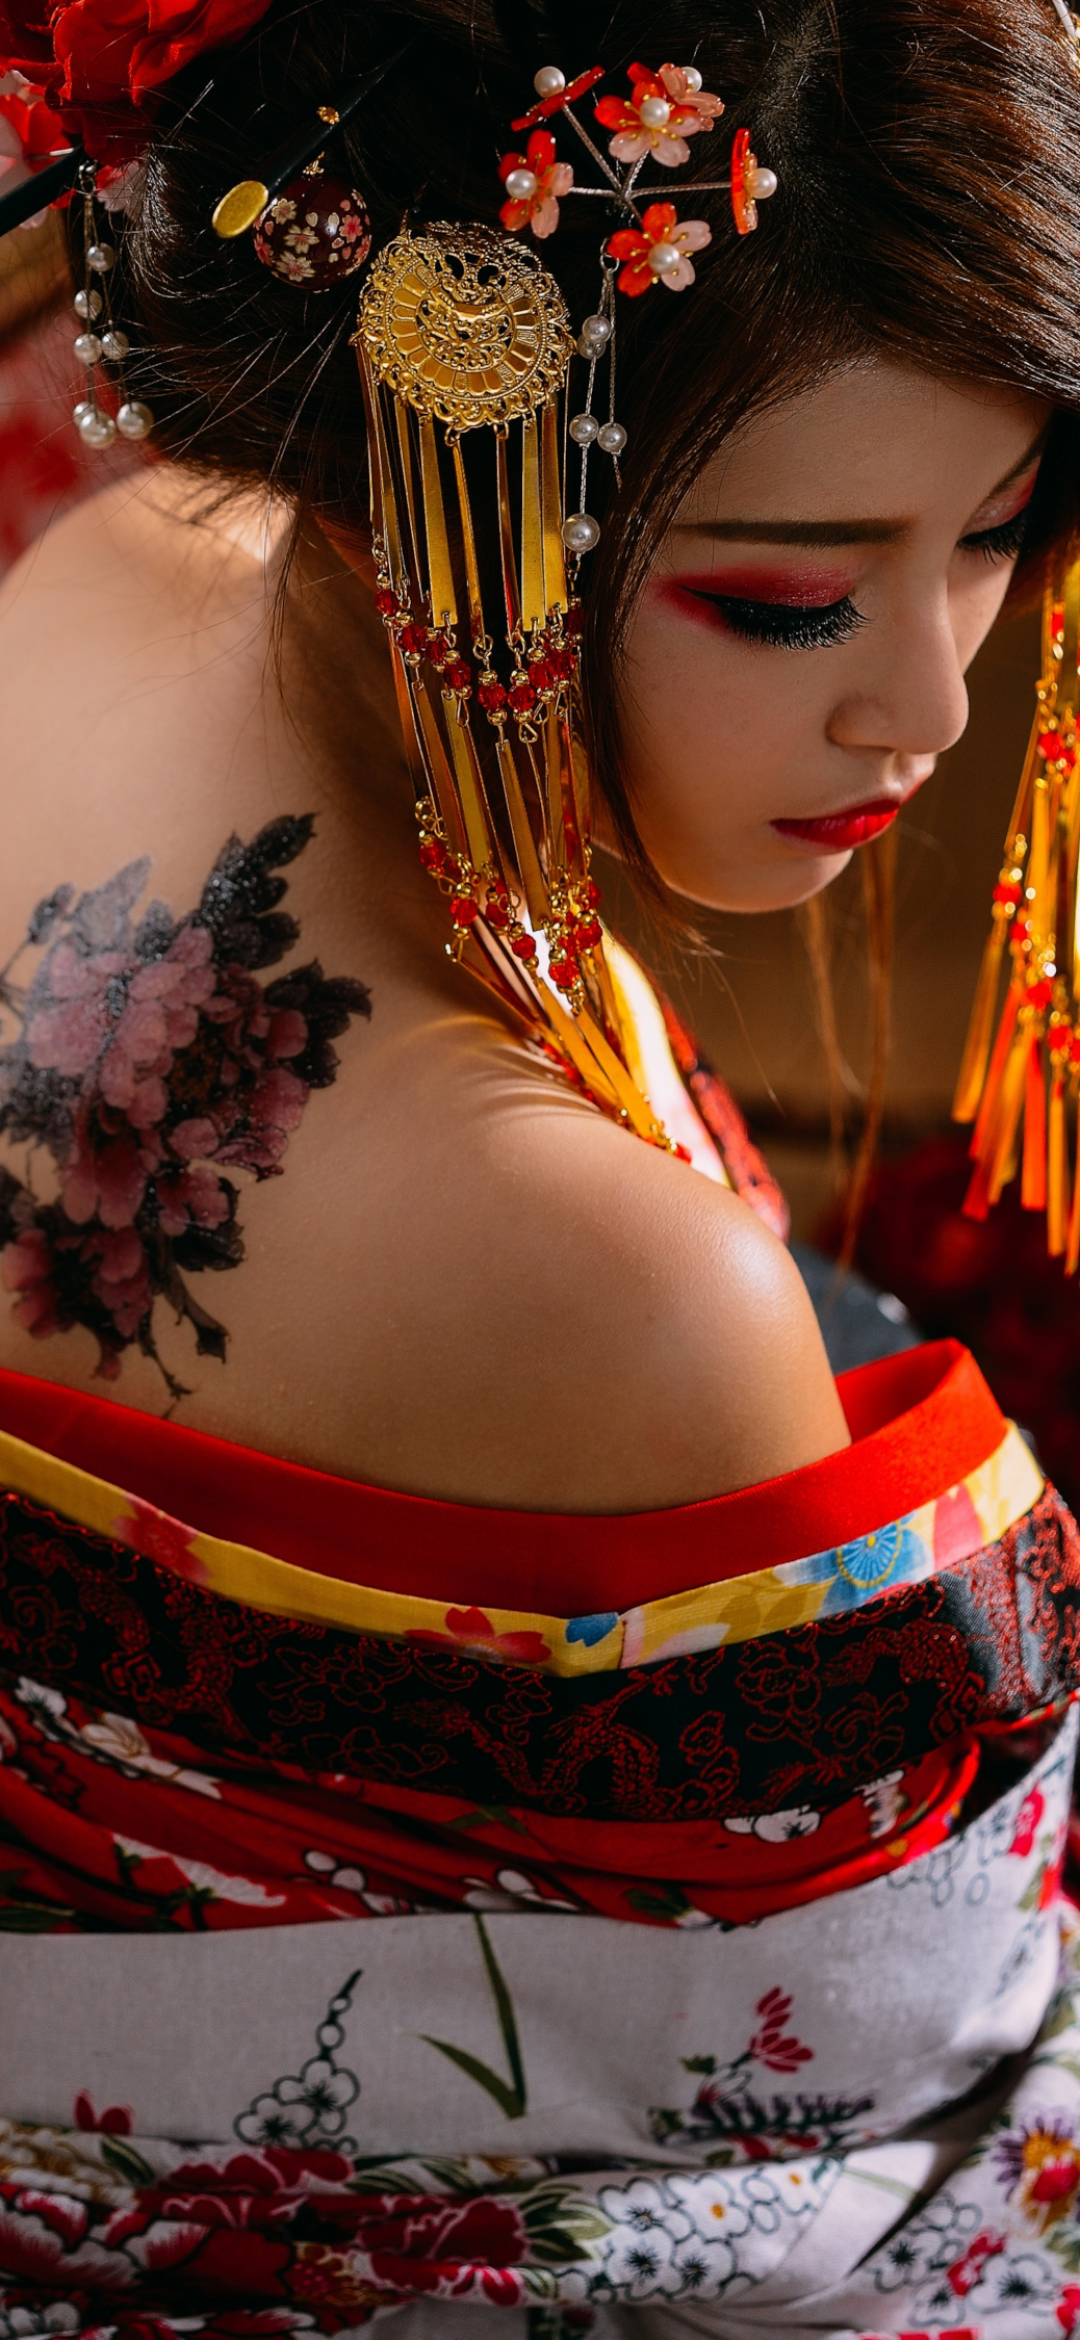 geisha woman mobile wallpaper